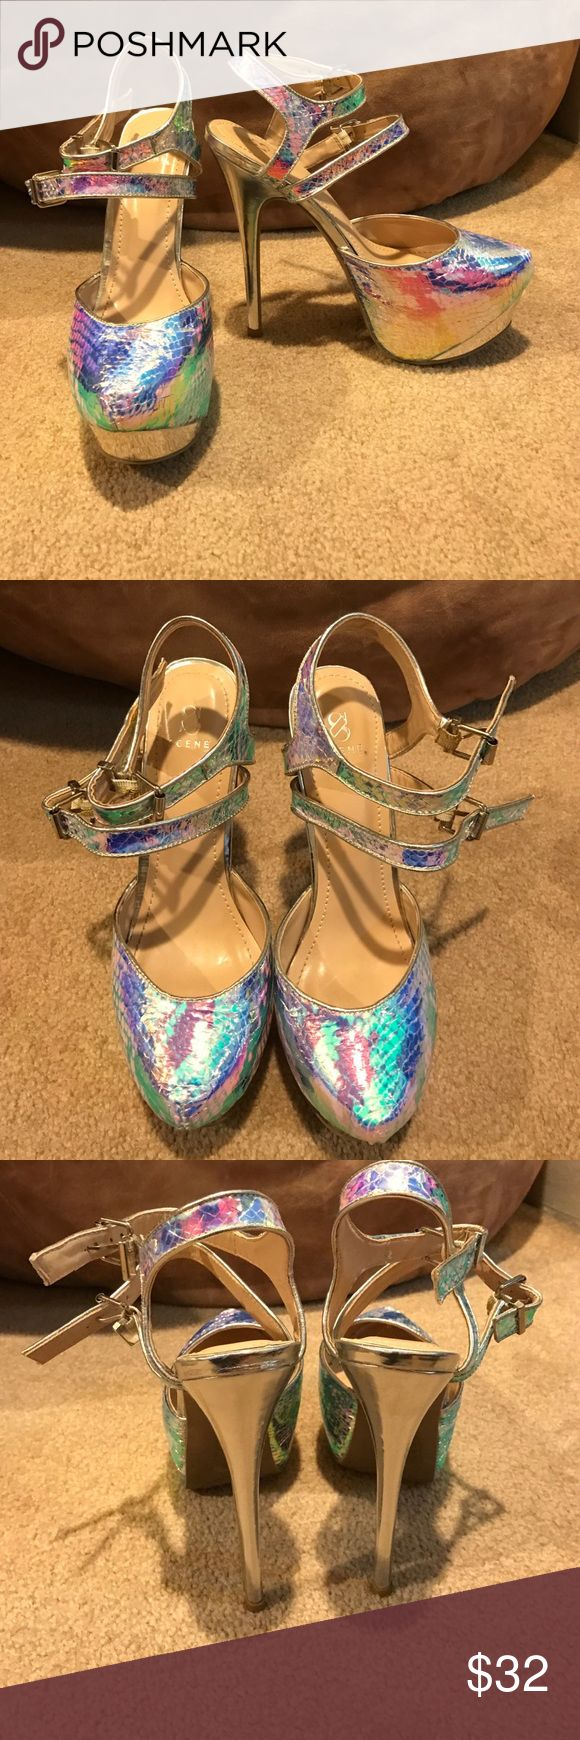 Sassy high heels! These are fun high heels that shine with the light! They are fun to wear! Size 8. Worn once. No damage. Made by Scene by Shoe Dazzle. Shoe Dazzle Shoes Heels